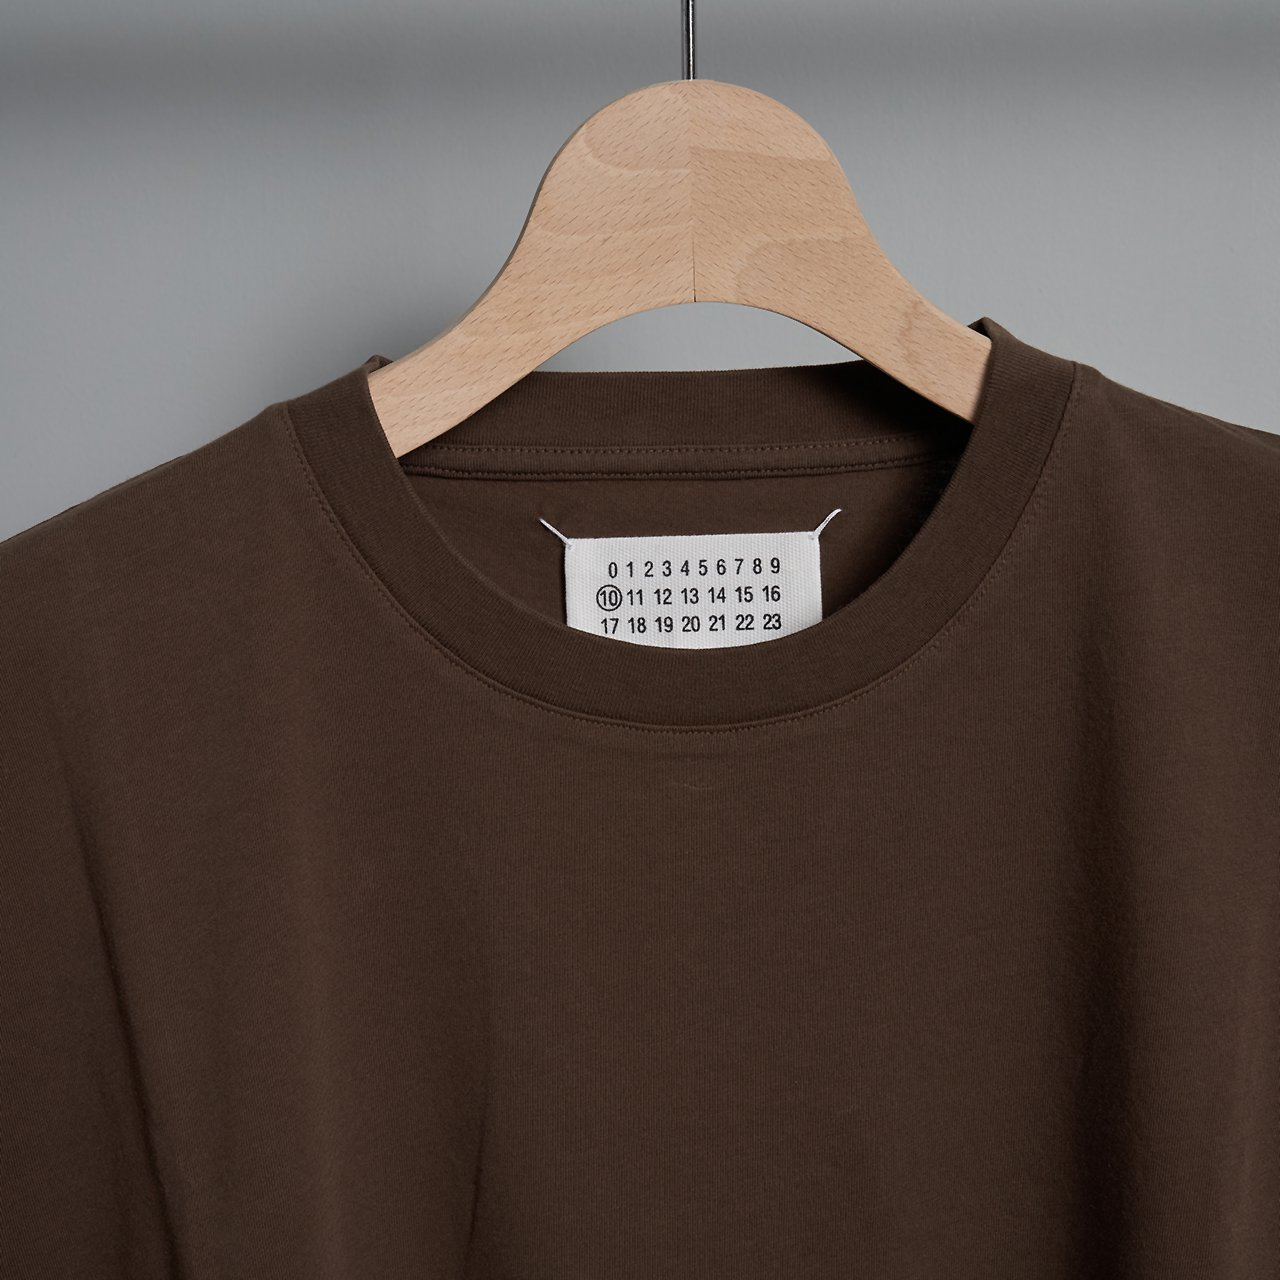 Maison Margiela PARIS <BR> COTTON  T - SHIRT <BR>ダークブラウン